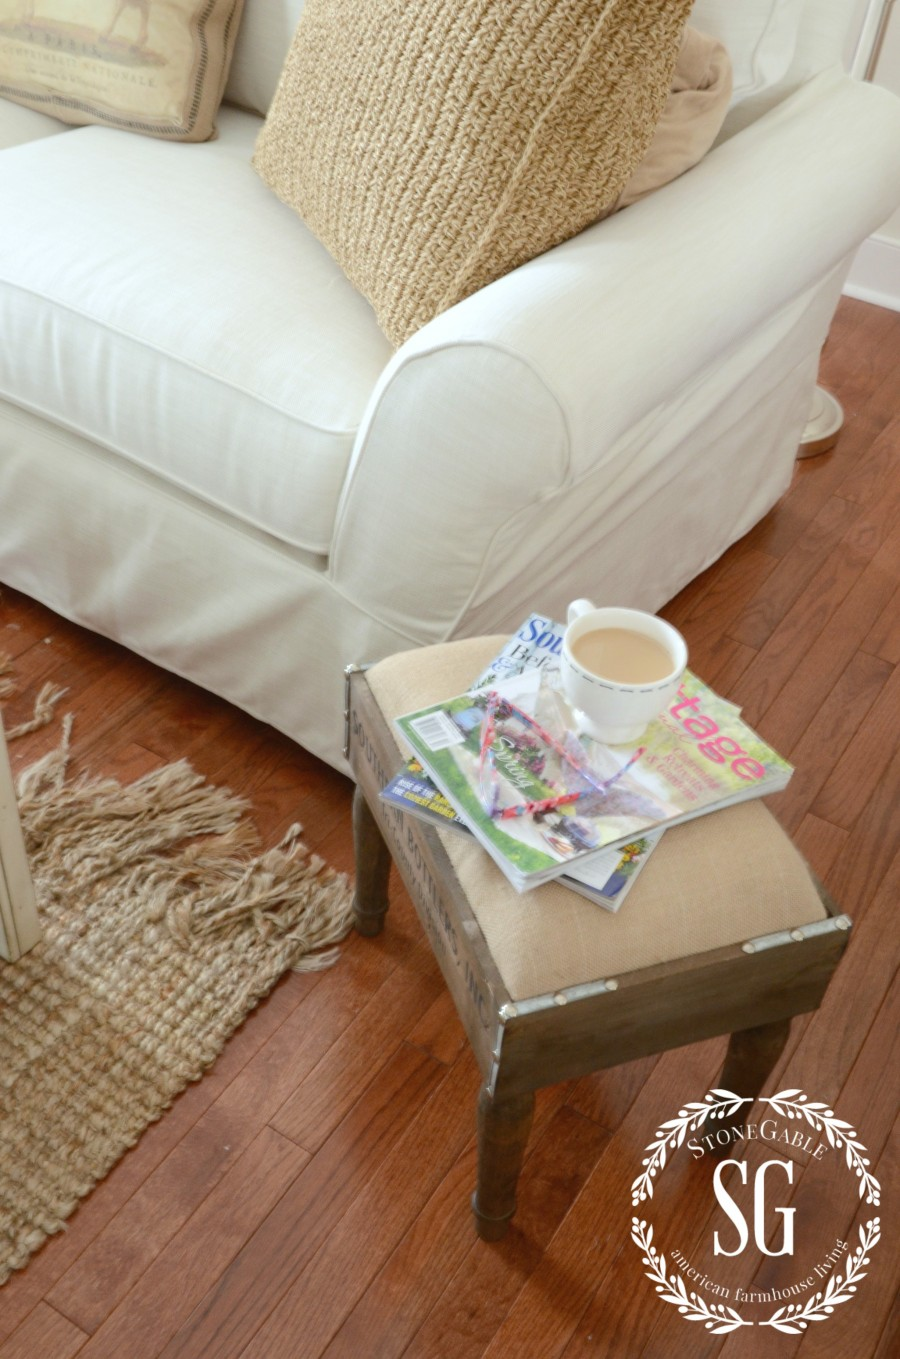 POTTERY BARN SOFA-sofa and burlap stool-stonegableblog.com